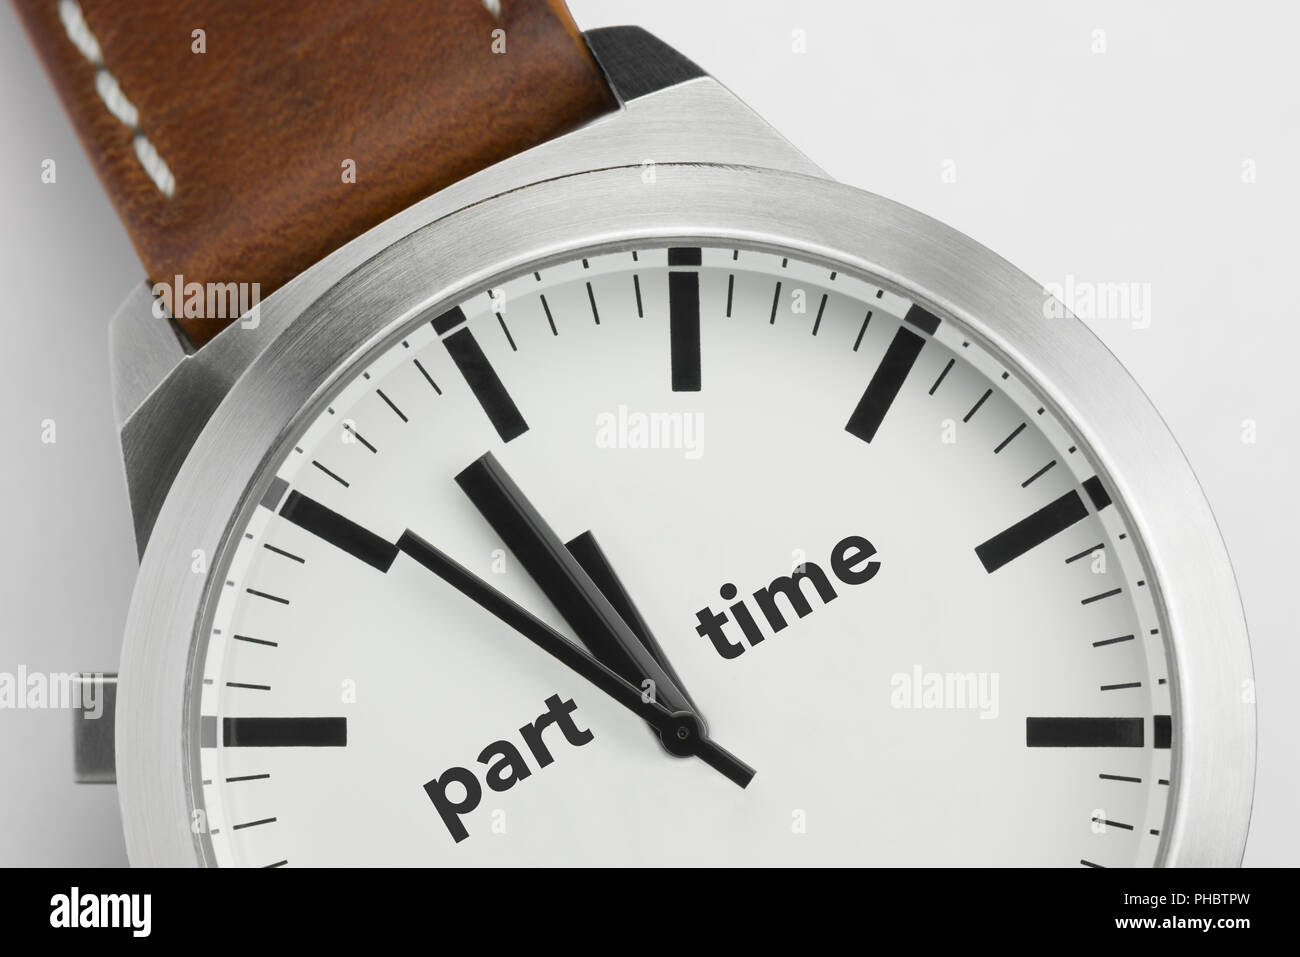 Watch with text Part Time - Stock Image